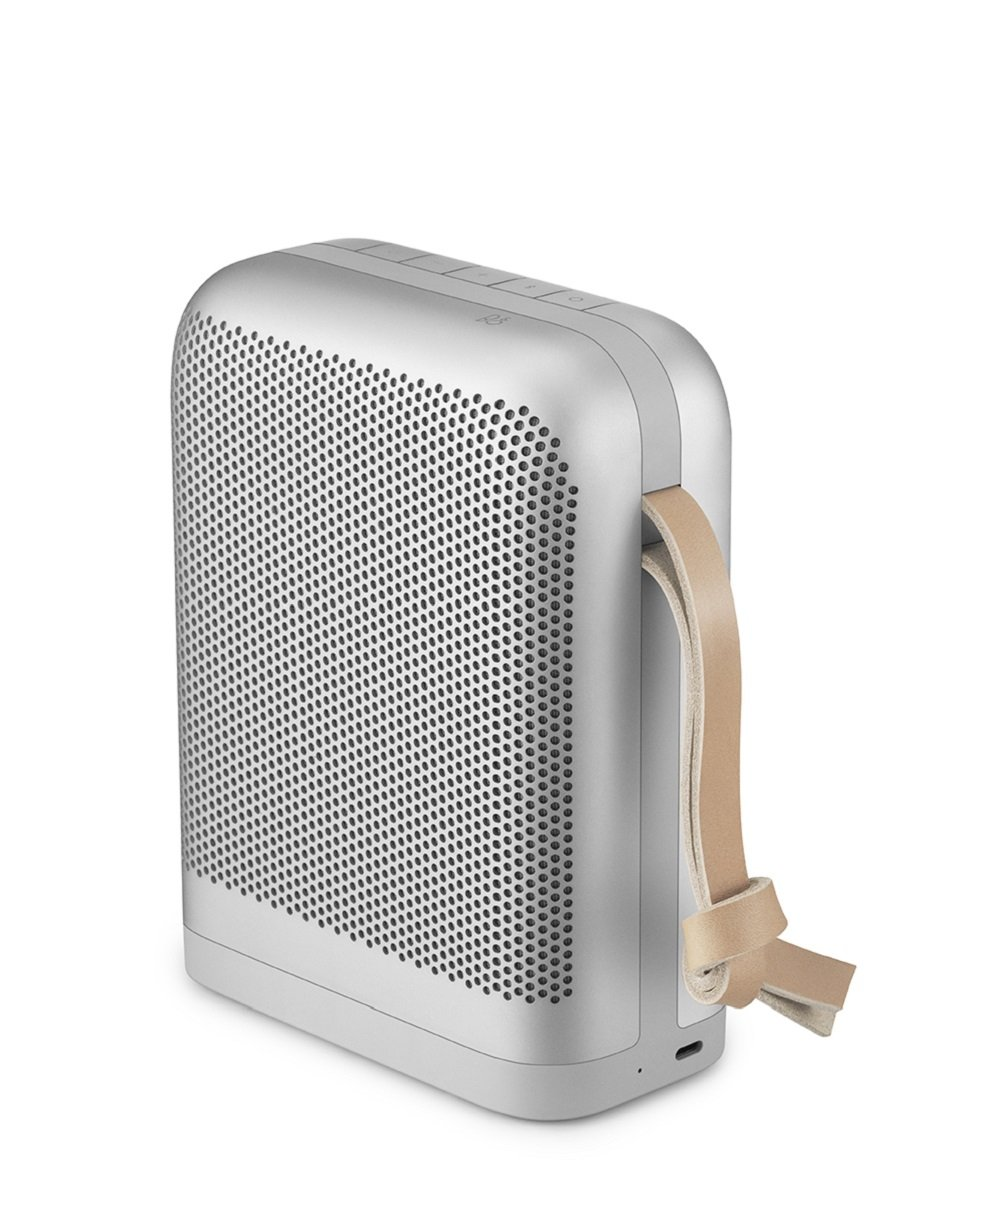 Bang & Olufsen Beoplay P6 Portable Bluetooth Speaker With..